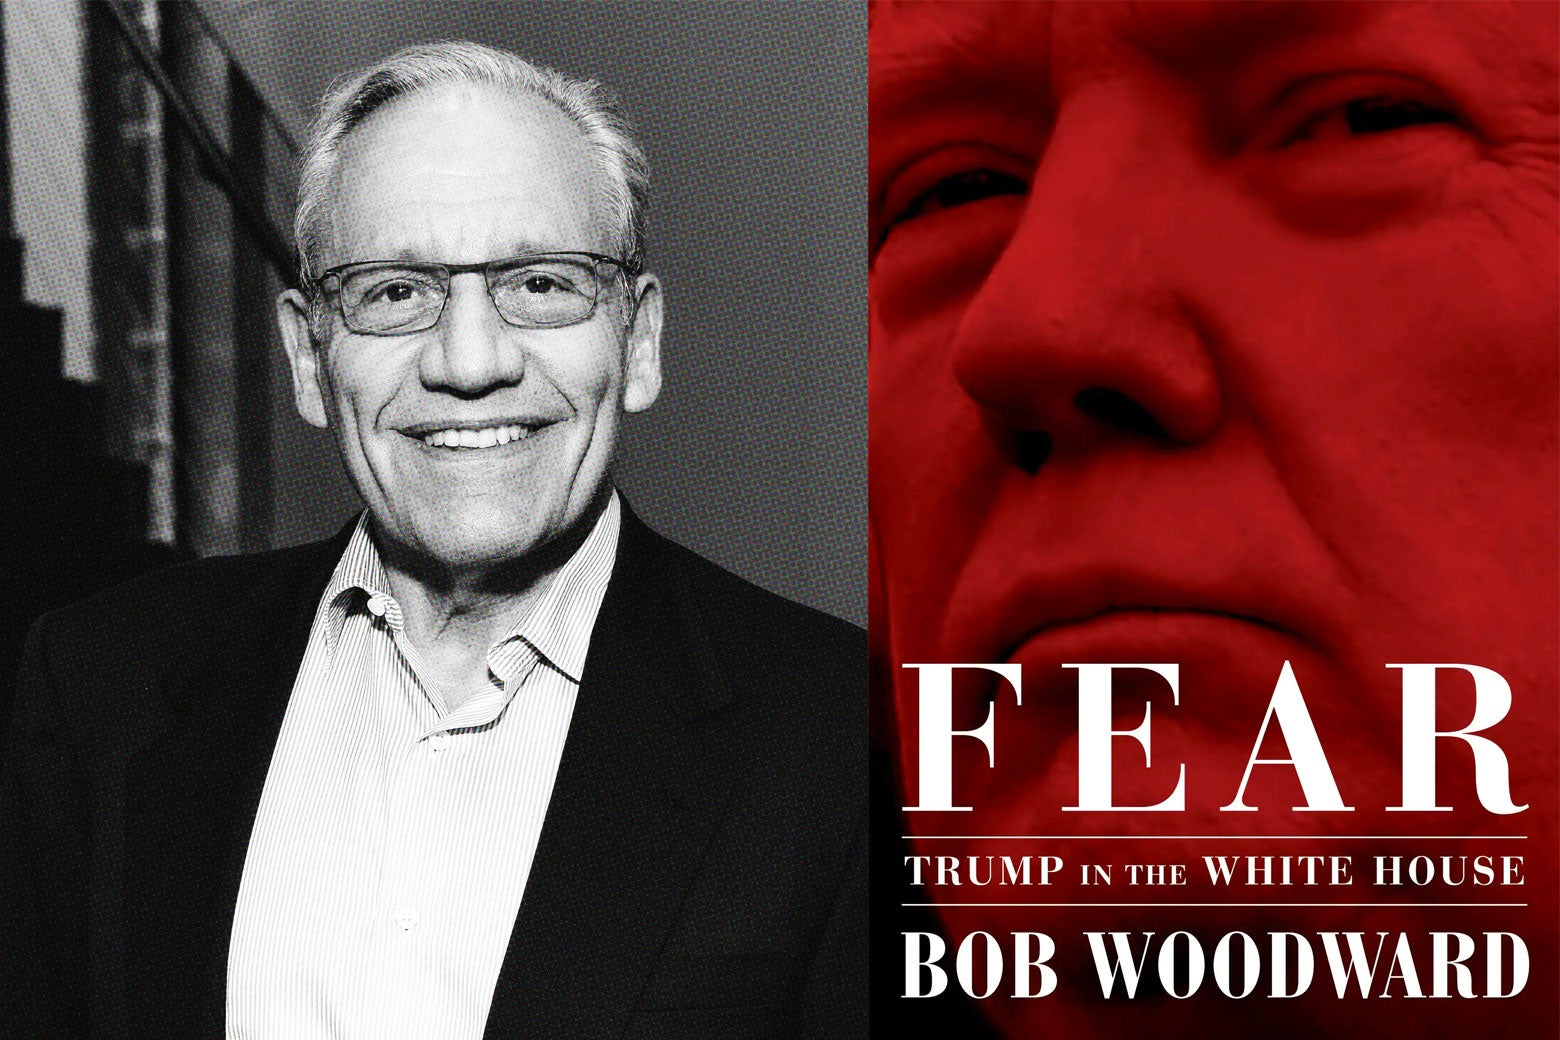 Photo illustration: Bob Woodward and the cover of Fear, side by side.